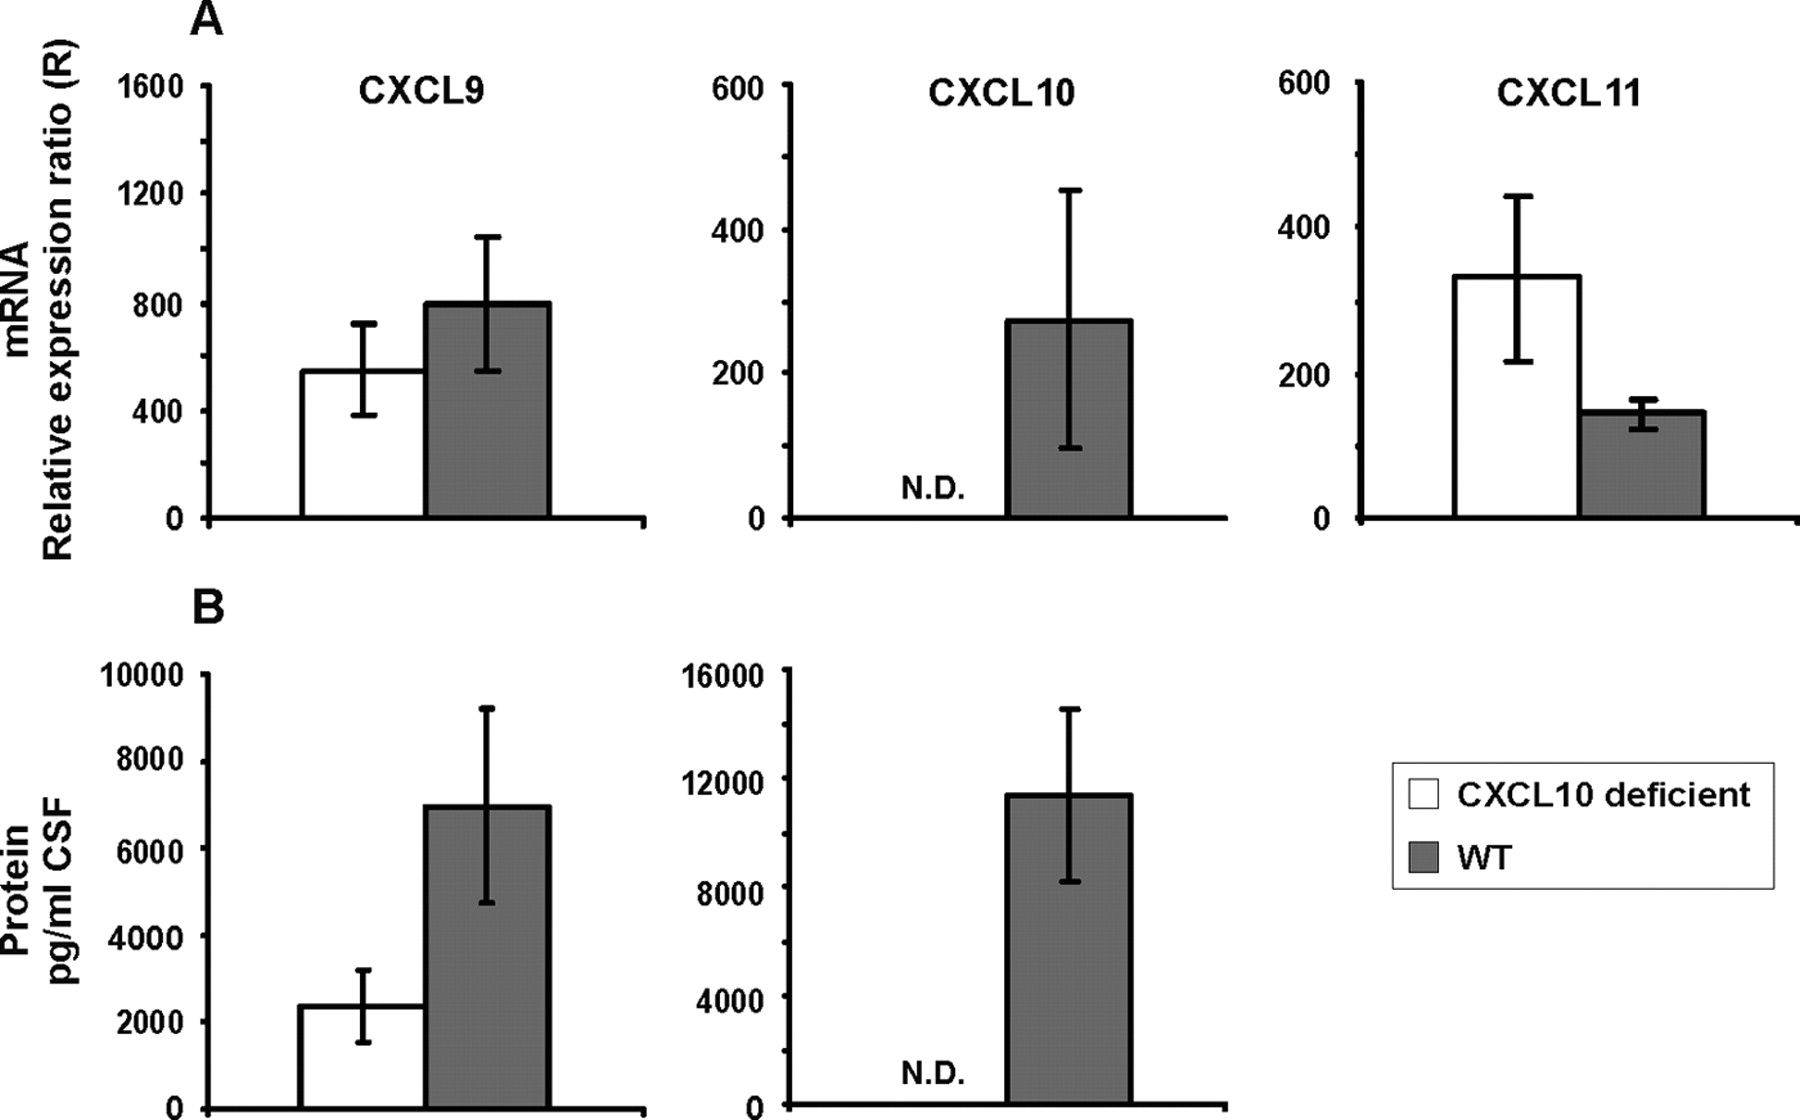 CXCL10 Is the Key Ligand for CXCR3 on CD8+ Effector T